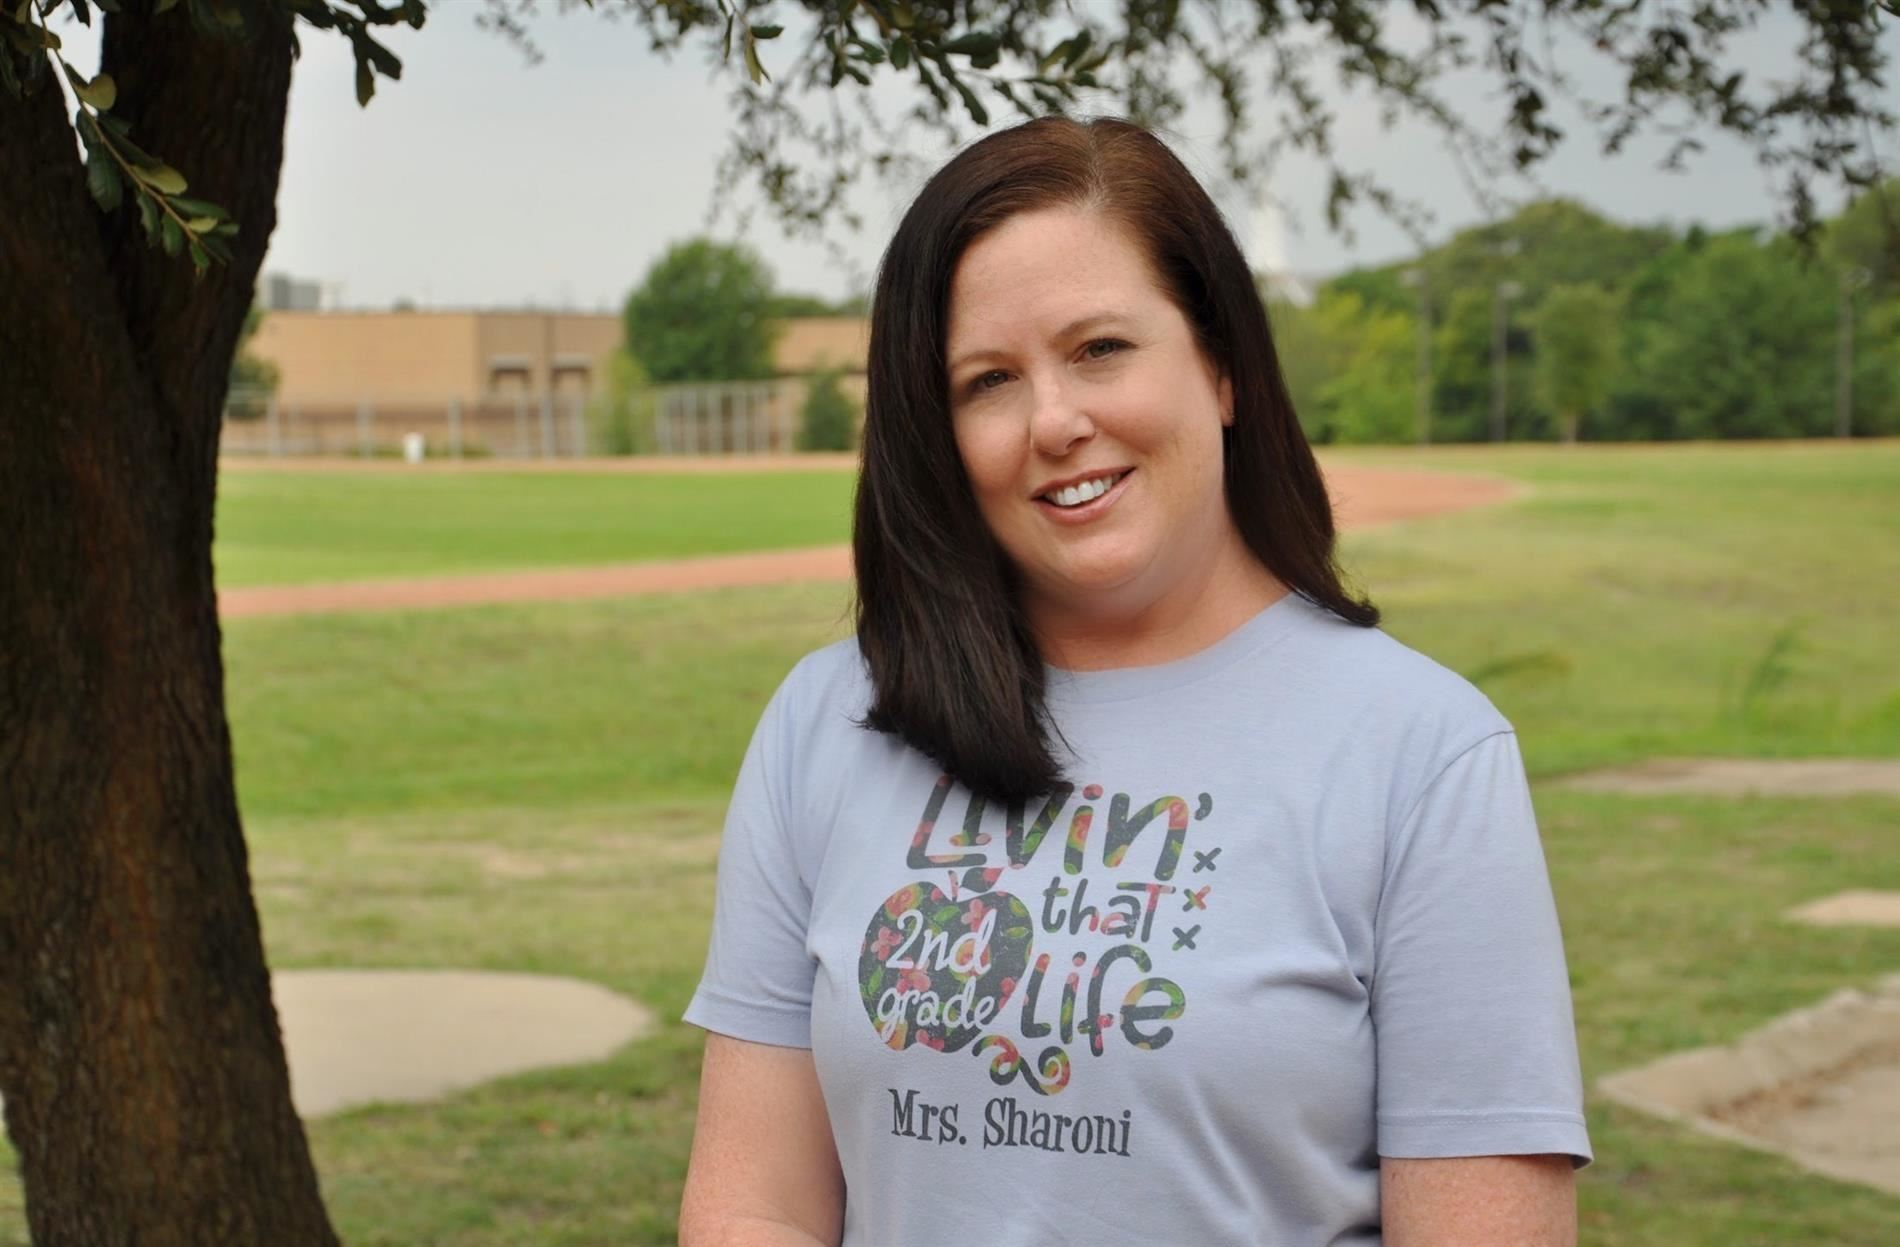 Michele Sharoni, Second Grade Teacher